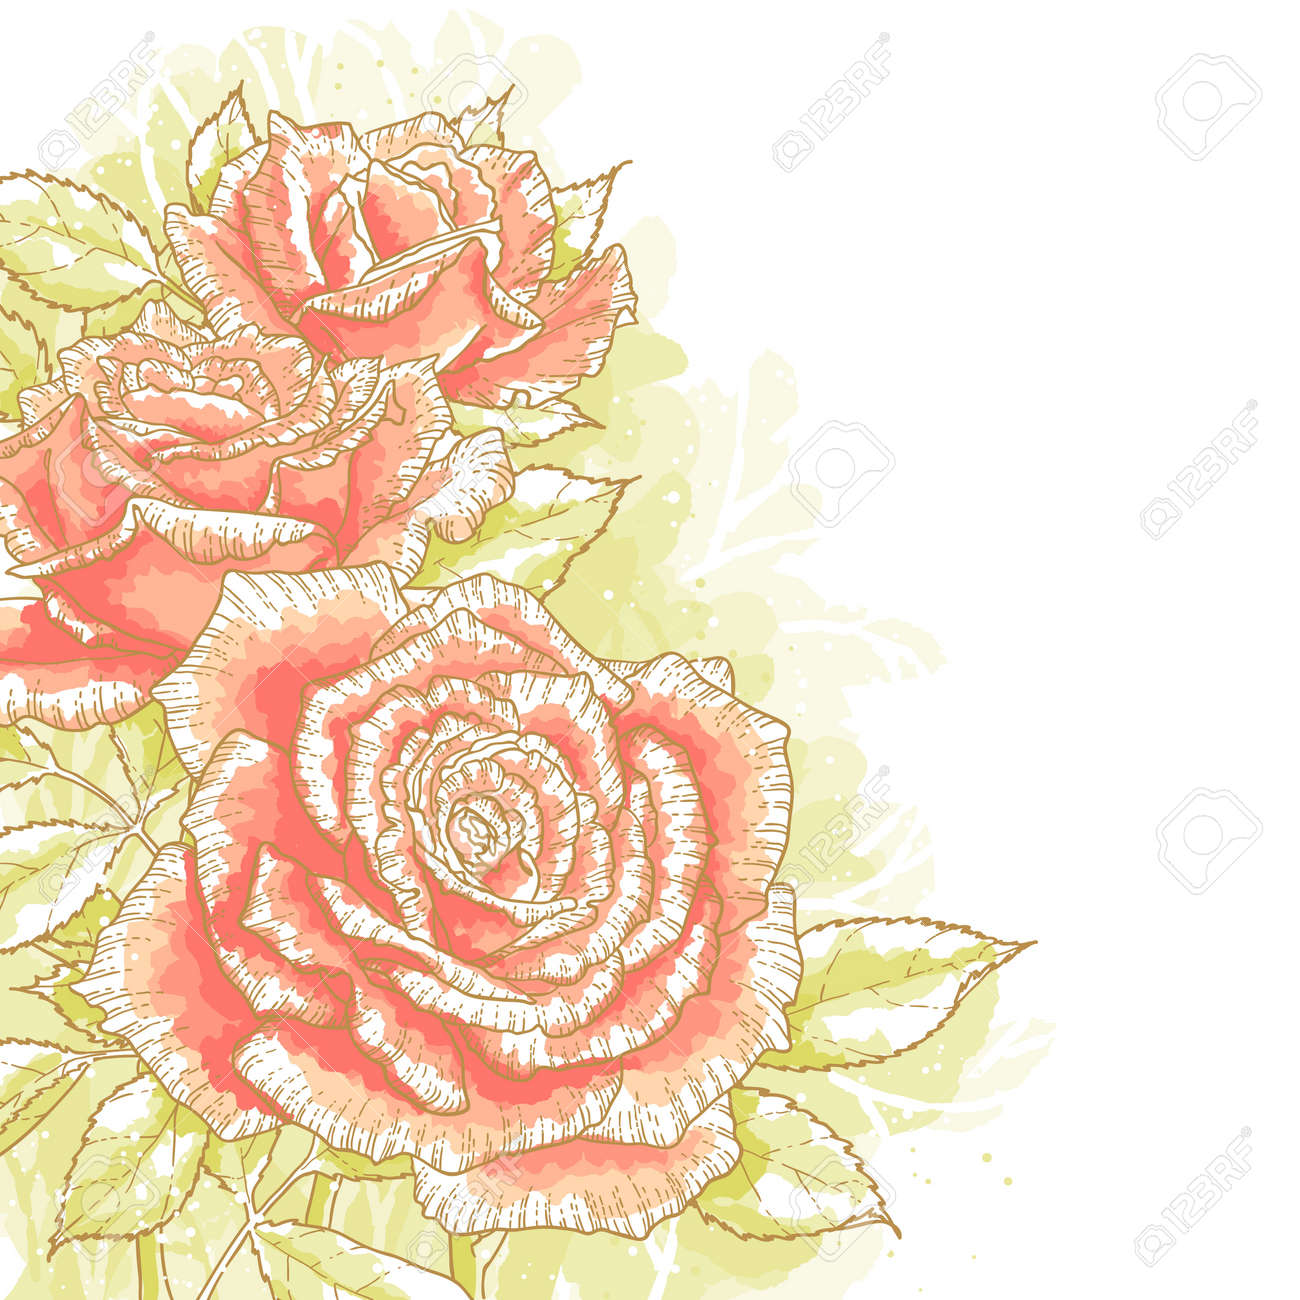 The contour drawing pink roses with leaves on white background  Watercolor style  Can be used as background for invitation cards Stock Vector - 15627548